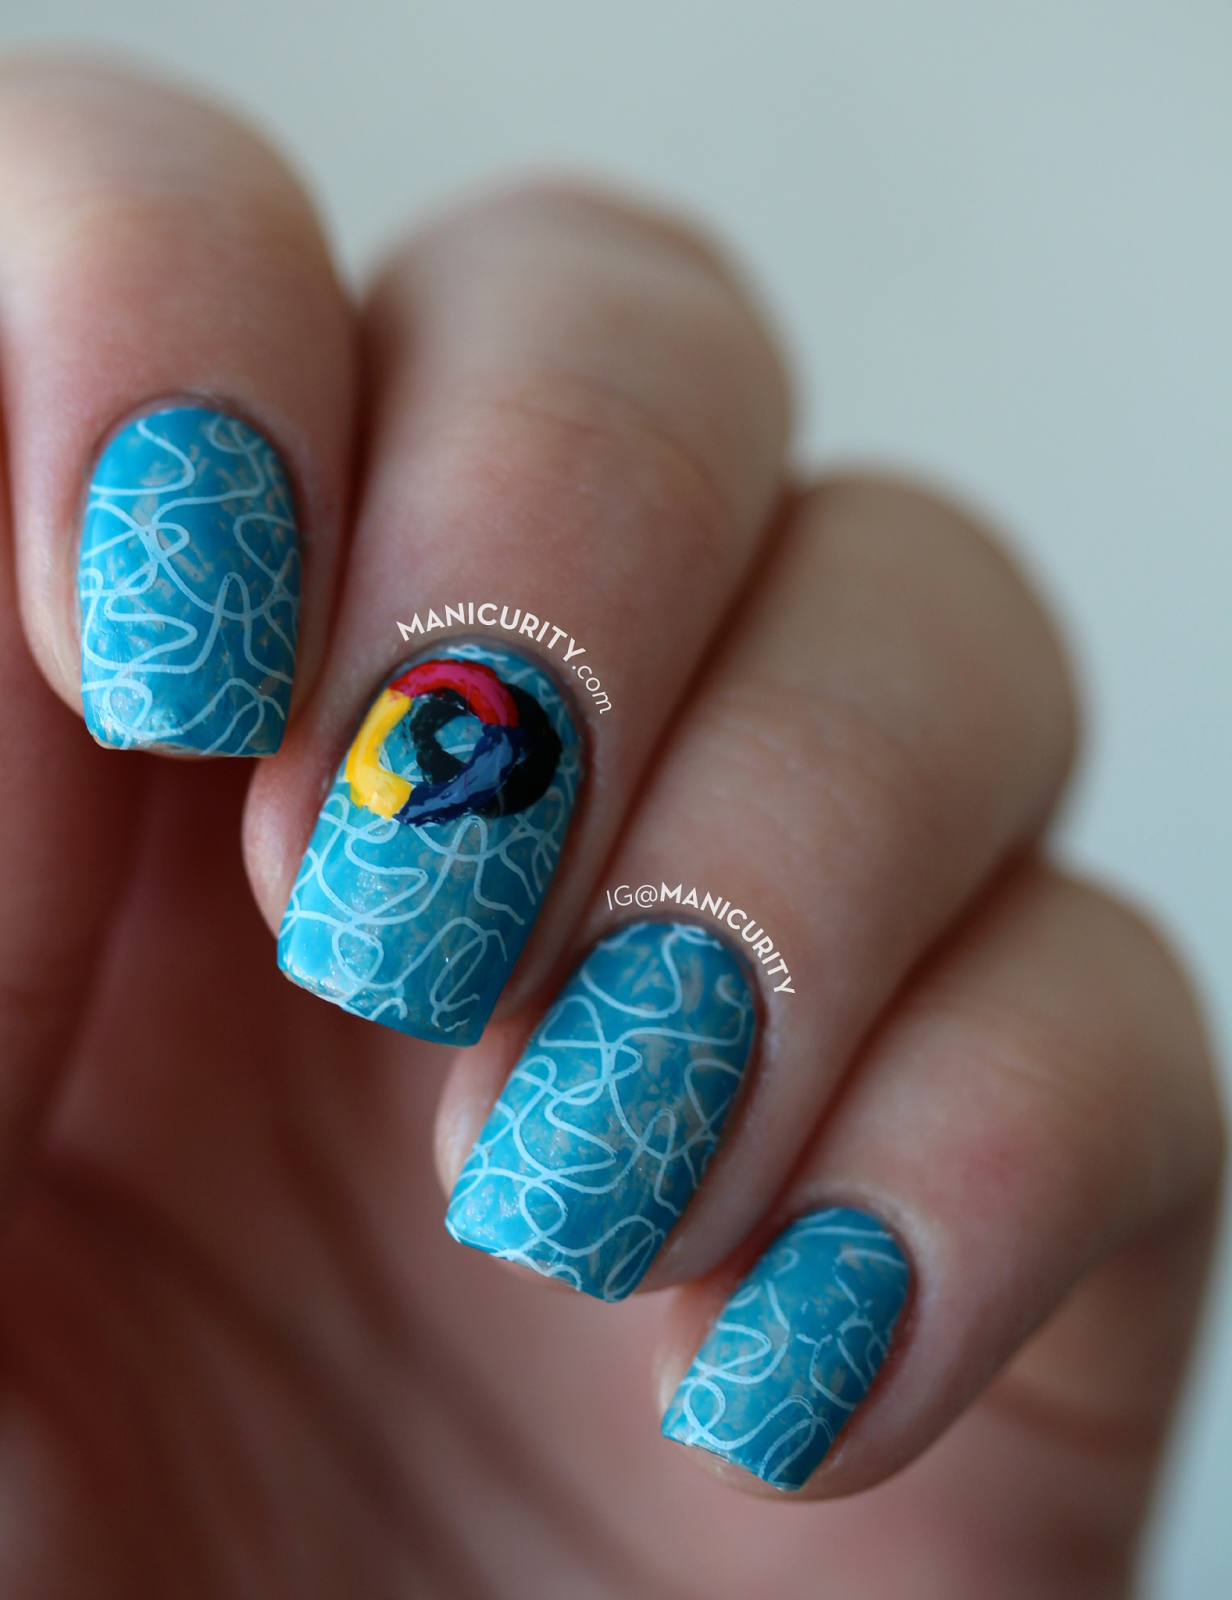 The Digit-al Dozen does SUMMER: Swimming Pool Nail Art using the saran wrap technique, stamping, and a freehand floatie ring | Manicurity.com